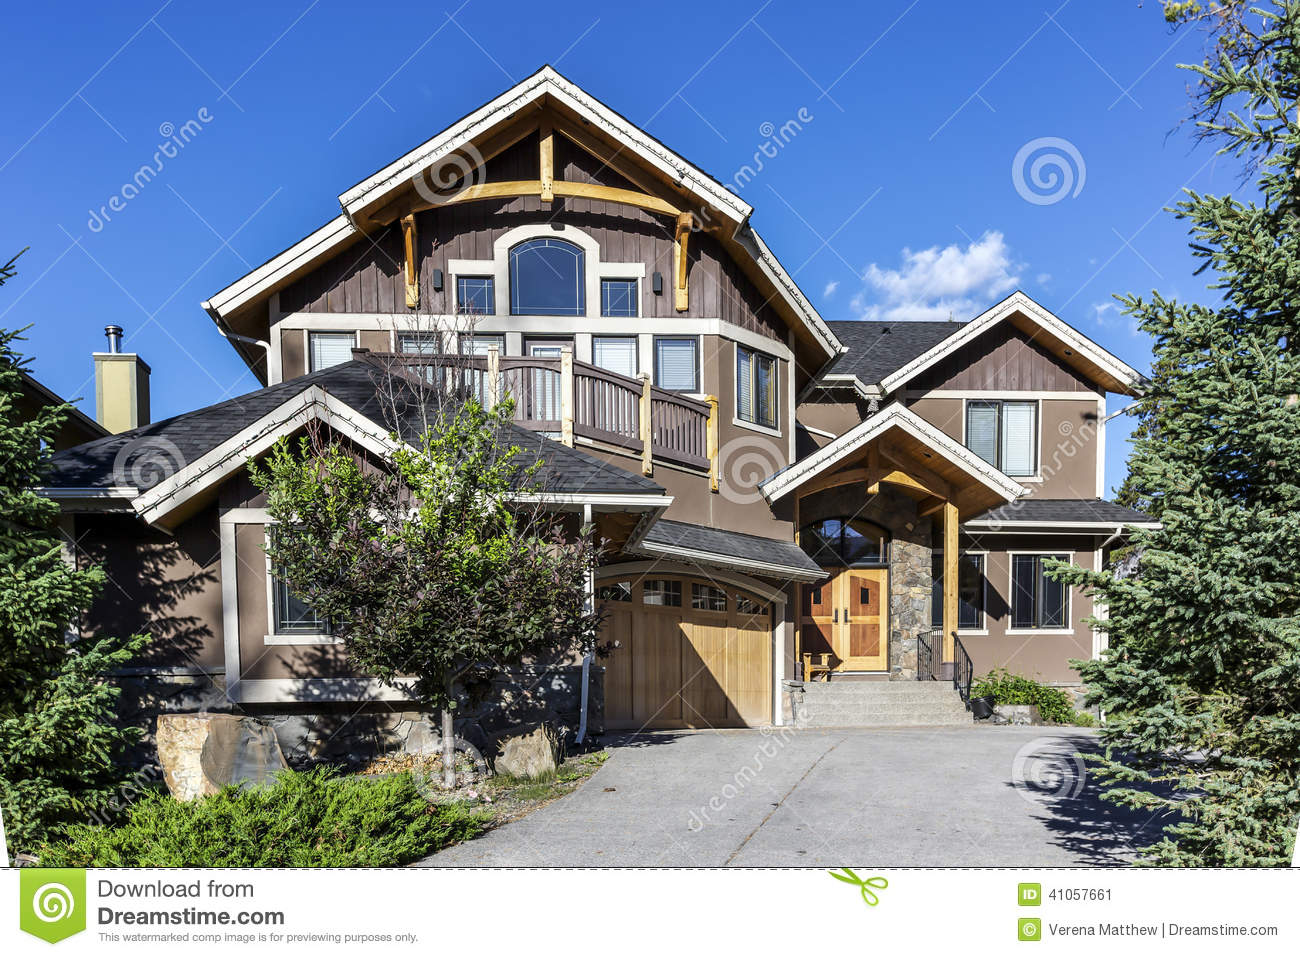 Western style home stock photo image 41057661 for Western style houses